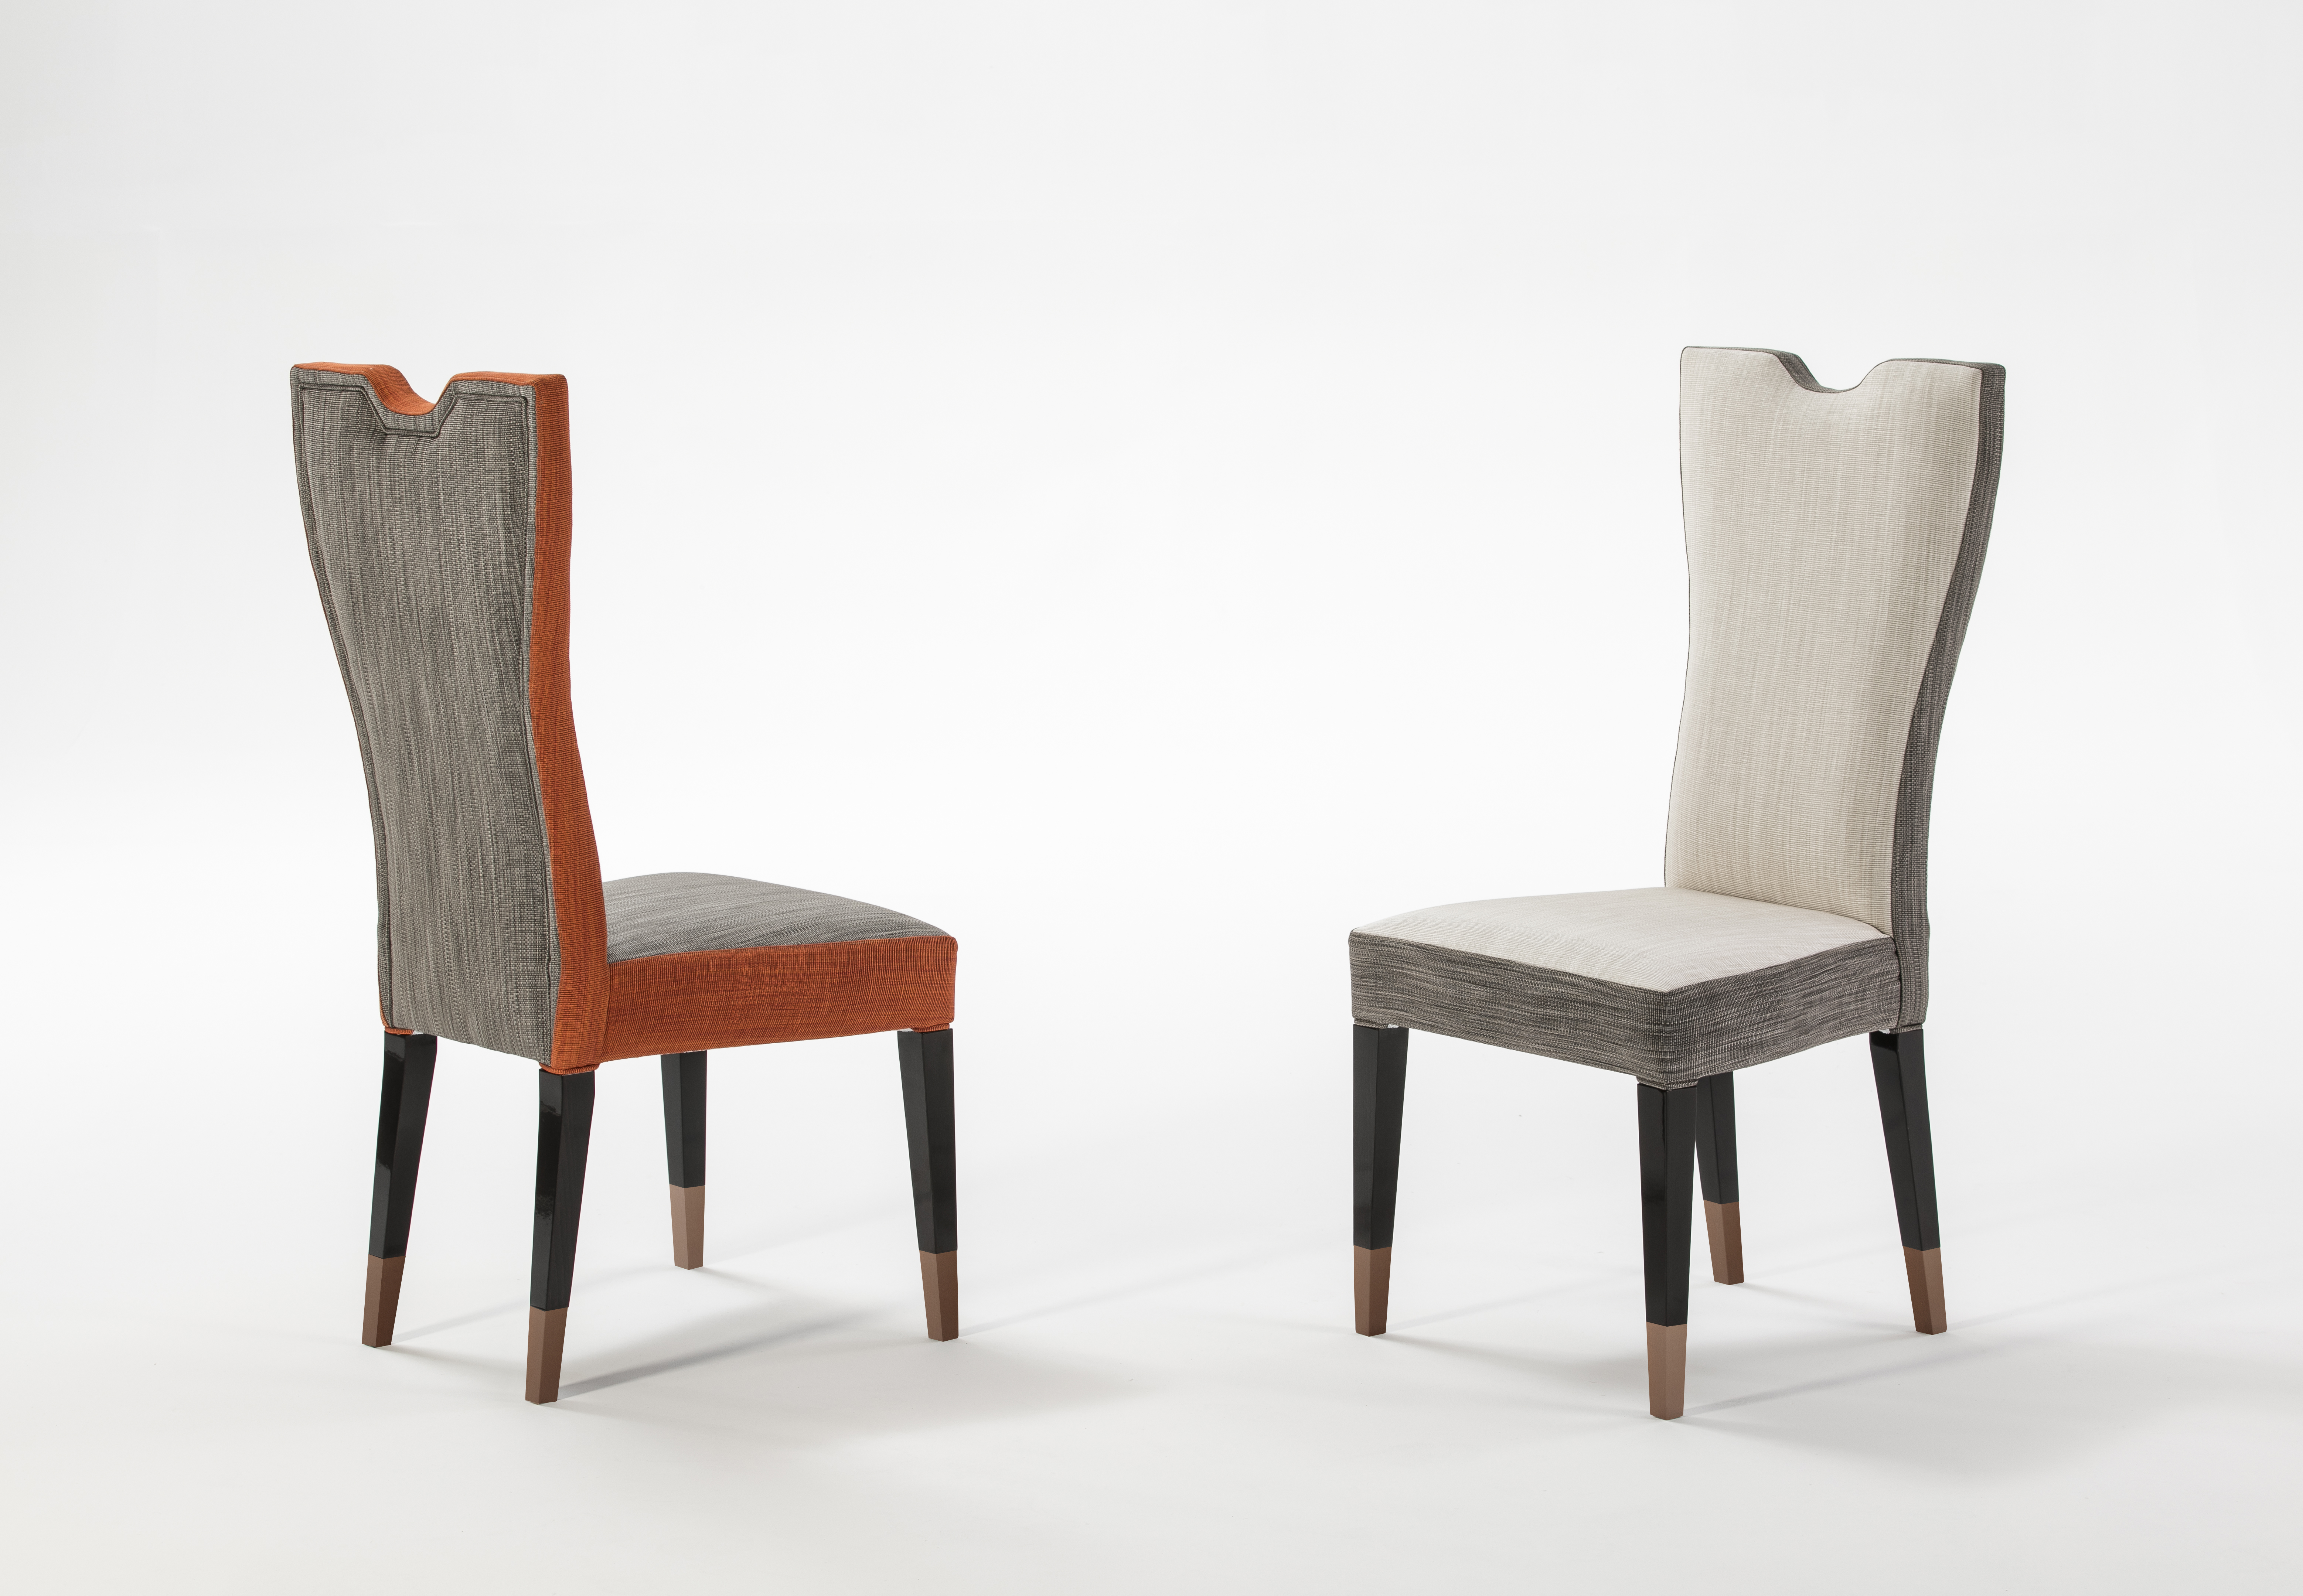 TRIBUTE TO GIO PONTI JELLY chairs